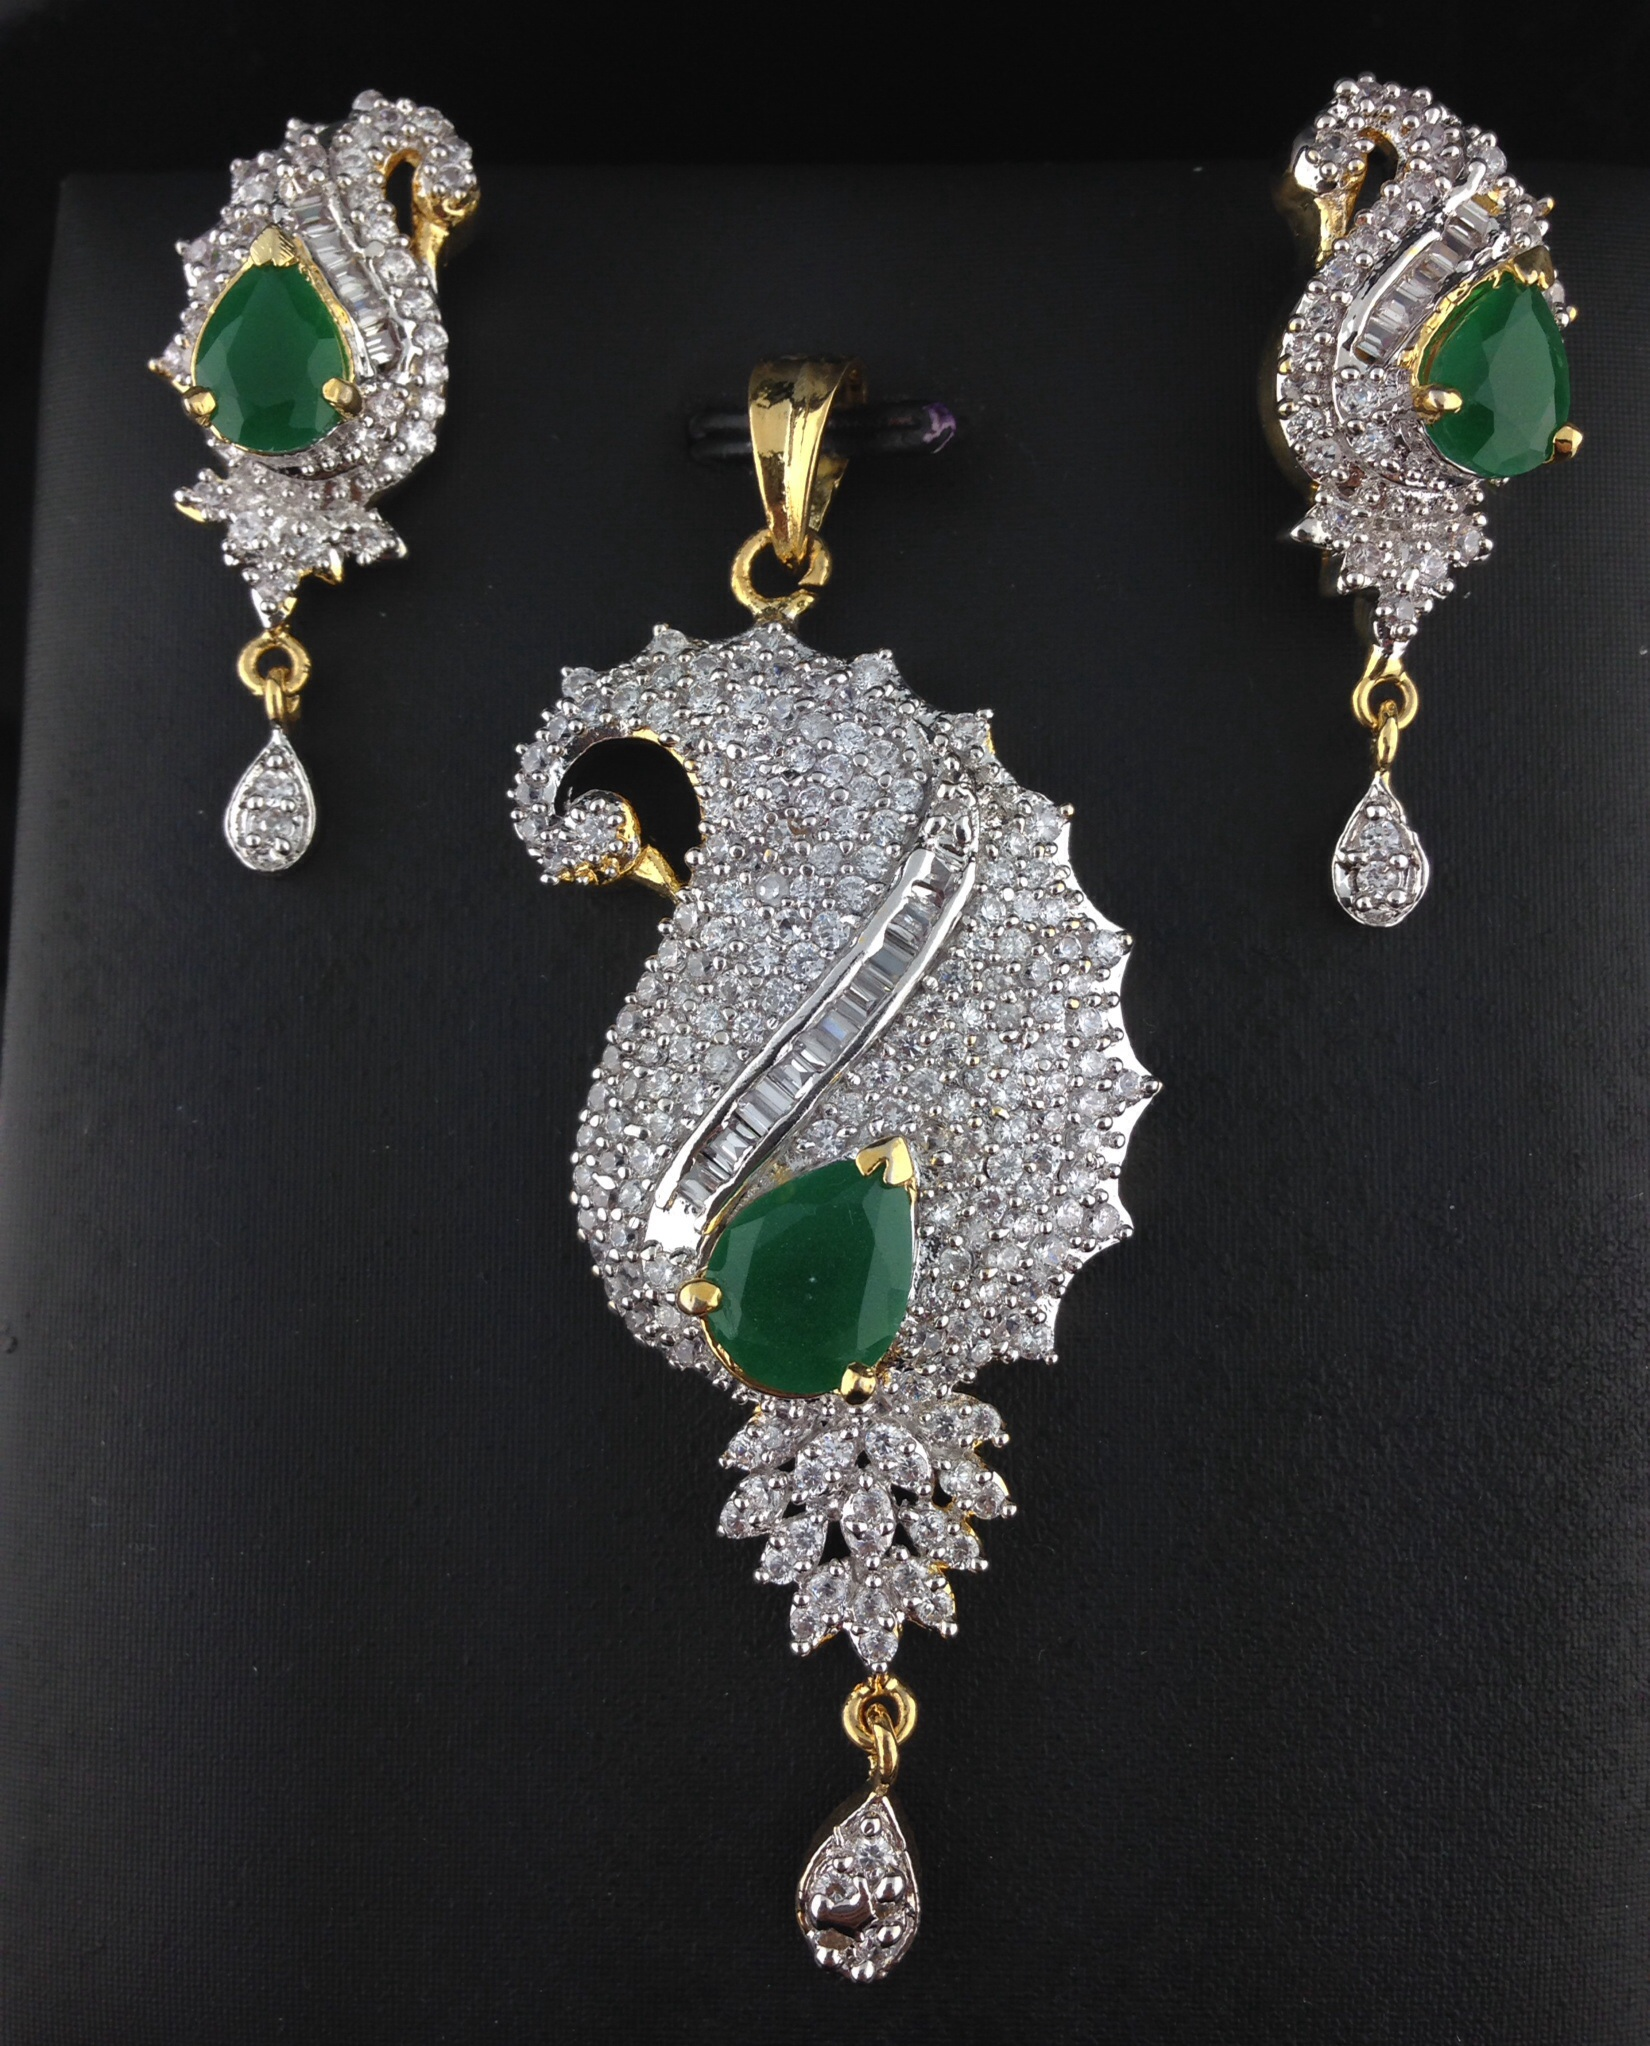 jewellery for necklaces necklace diamond south designs irvlst indian latest womendesigner